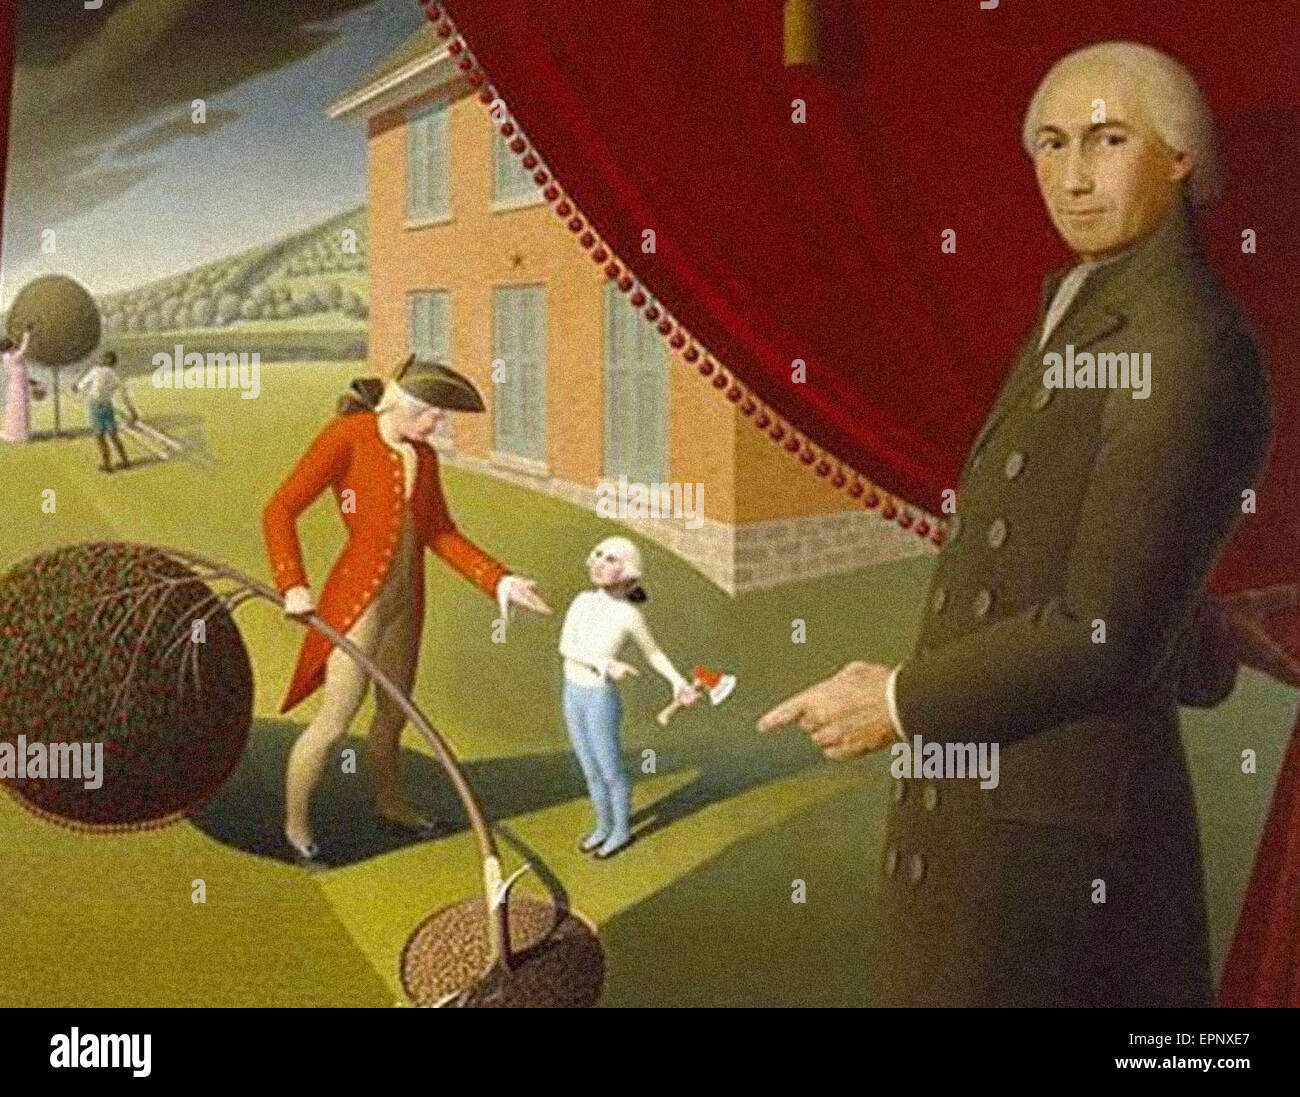 Grant Wood  Parson Weems Fable - Stock Image